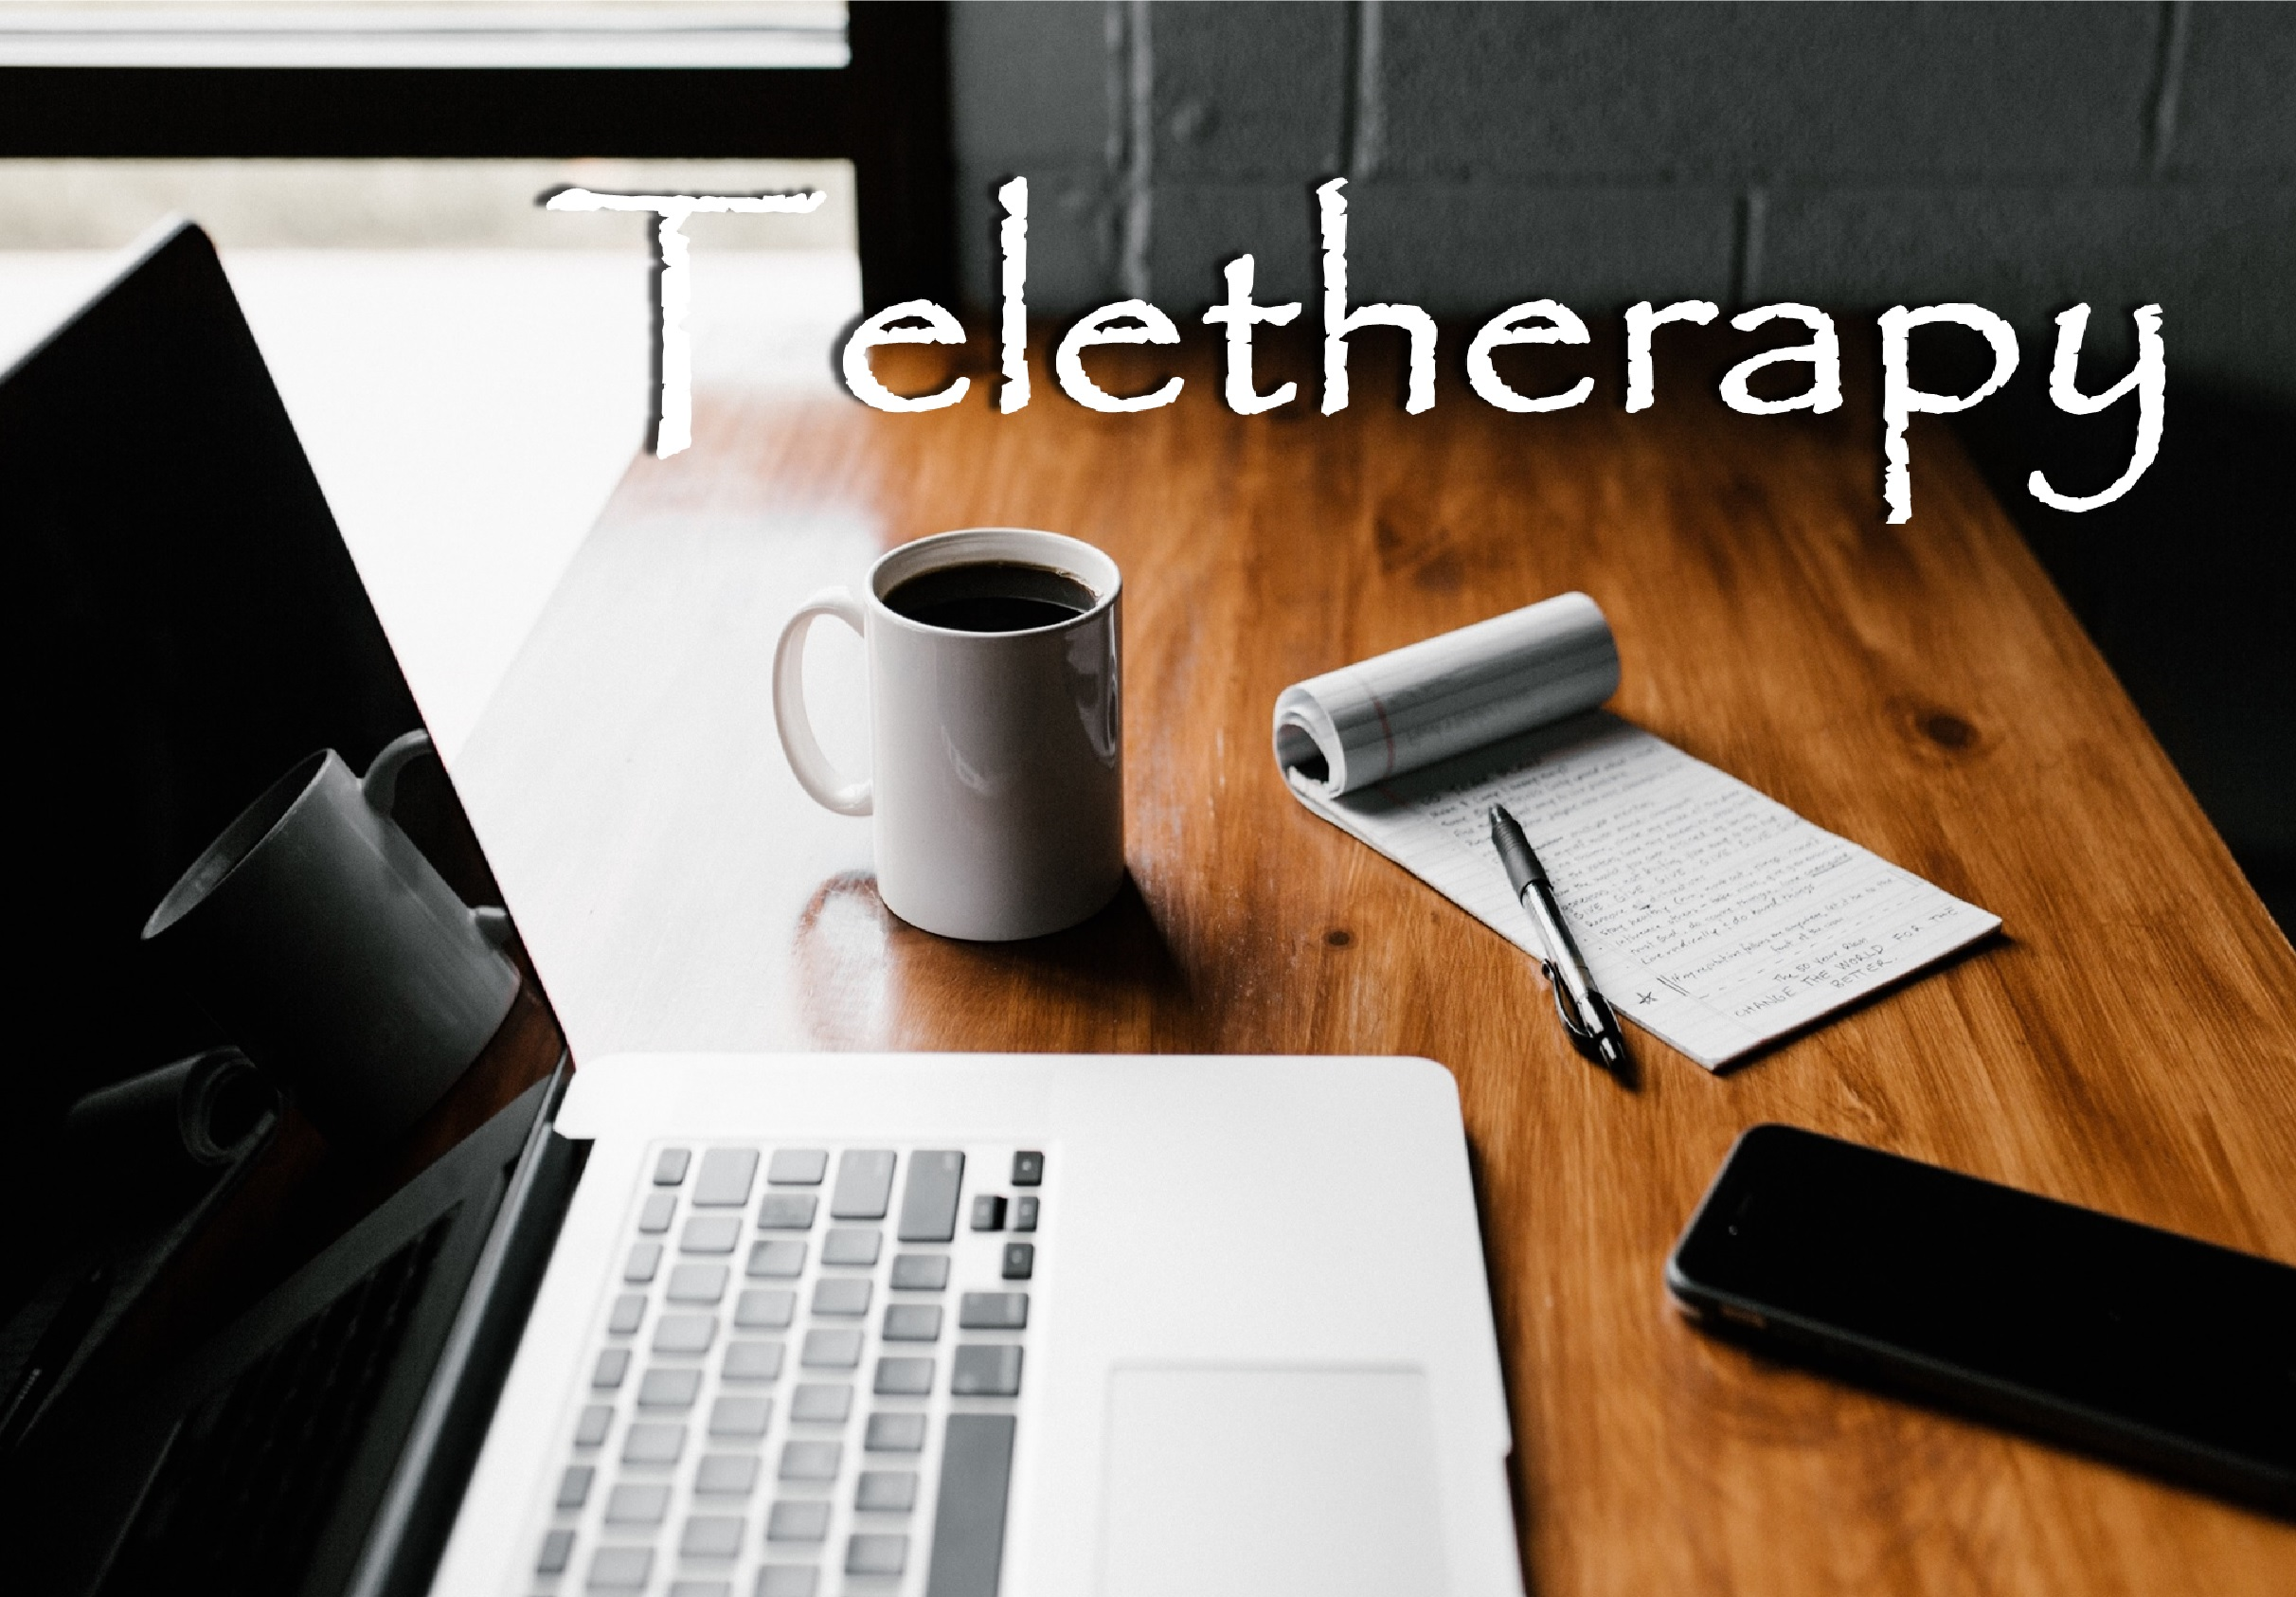 Teletherapy (labeled)